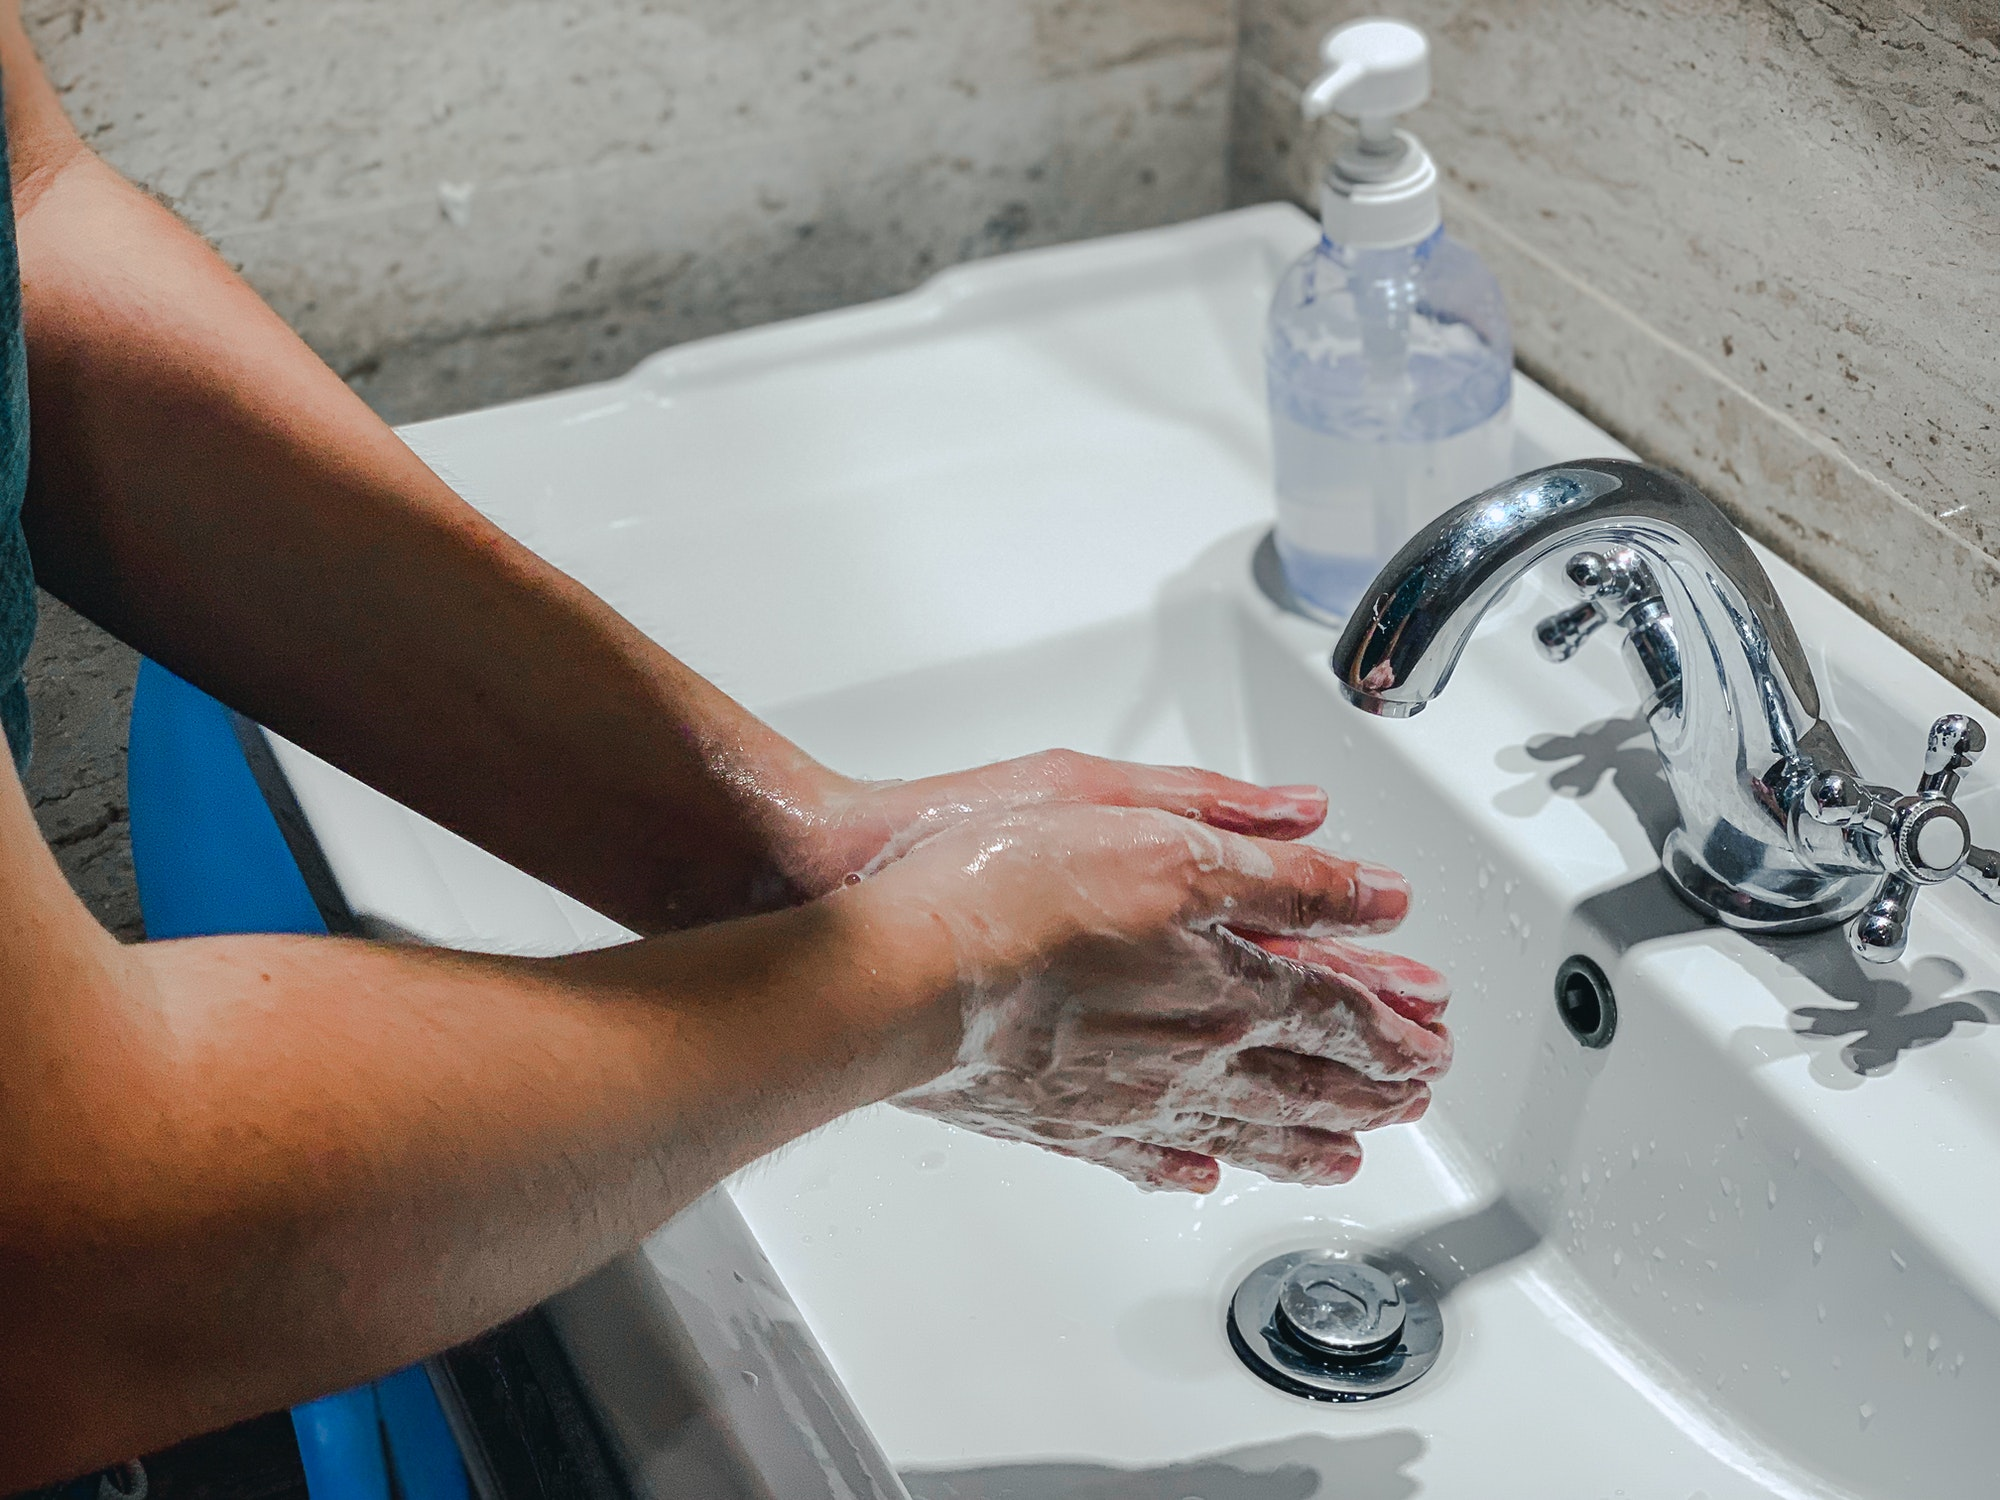 Coronavirus or Covid-19. Washing hands rubbing with soap man for corona virus prevention, hygiene to